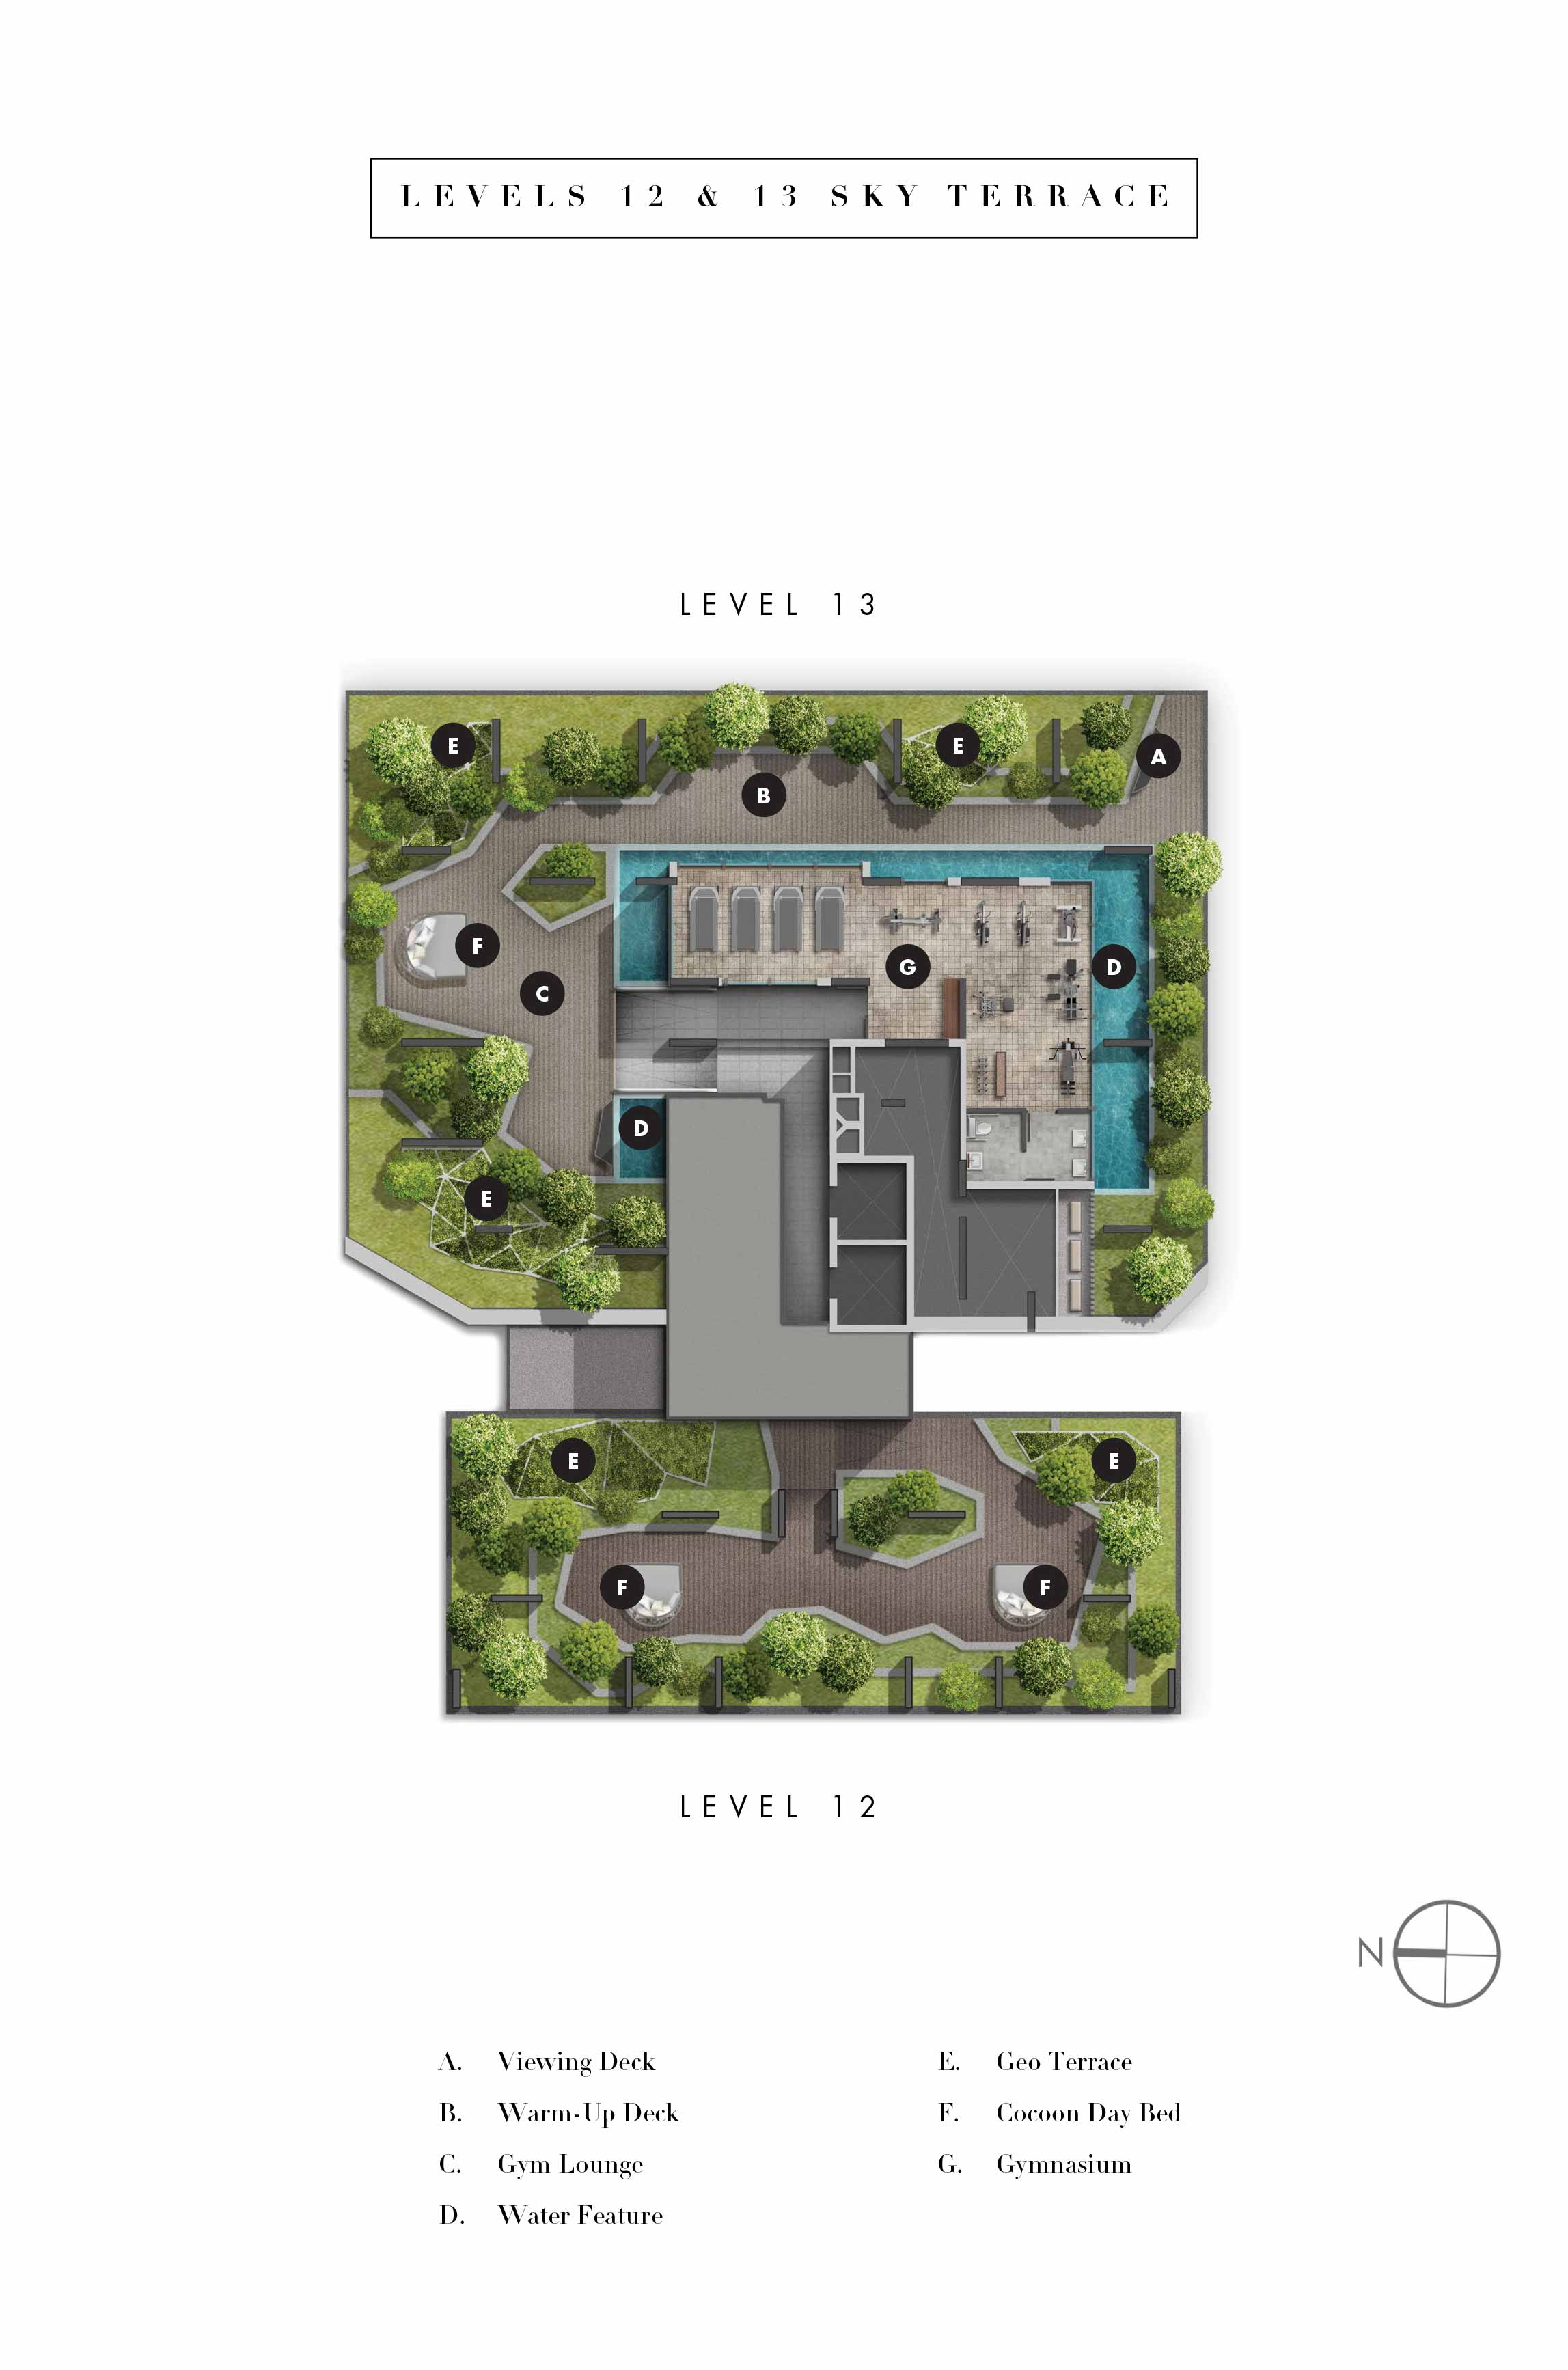 highline residences, sitemap level 12-13, sky terrace